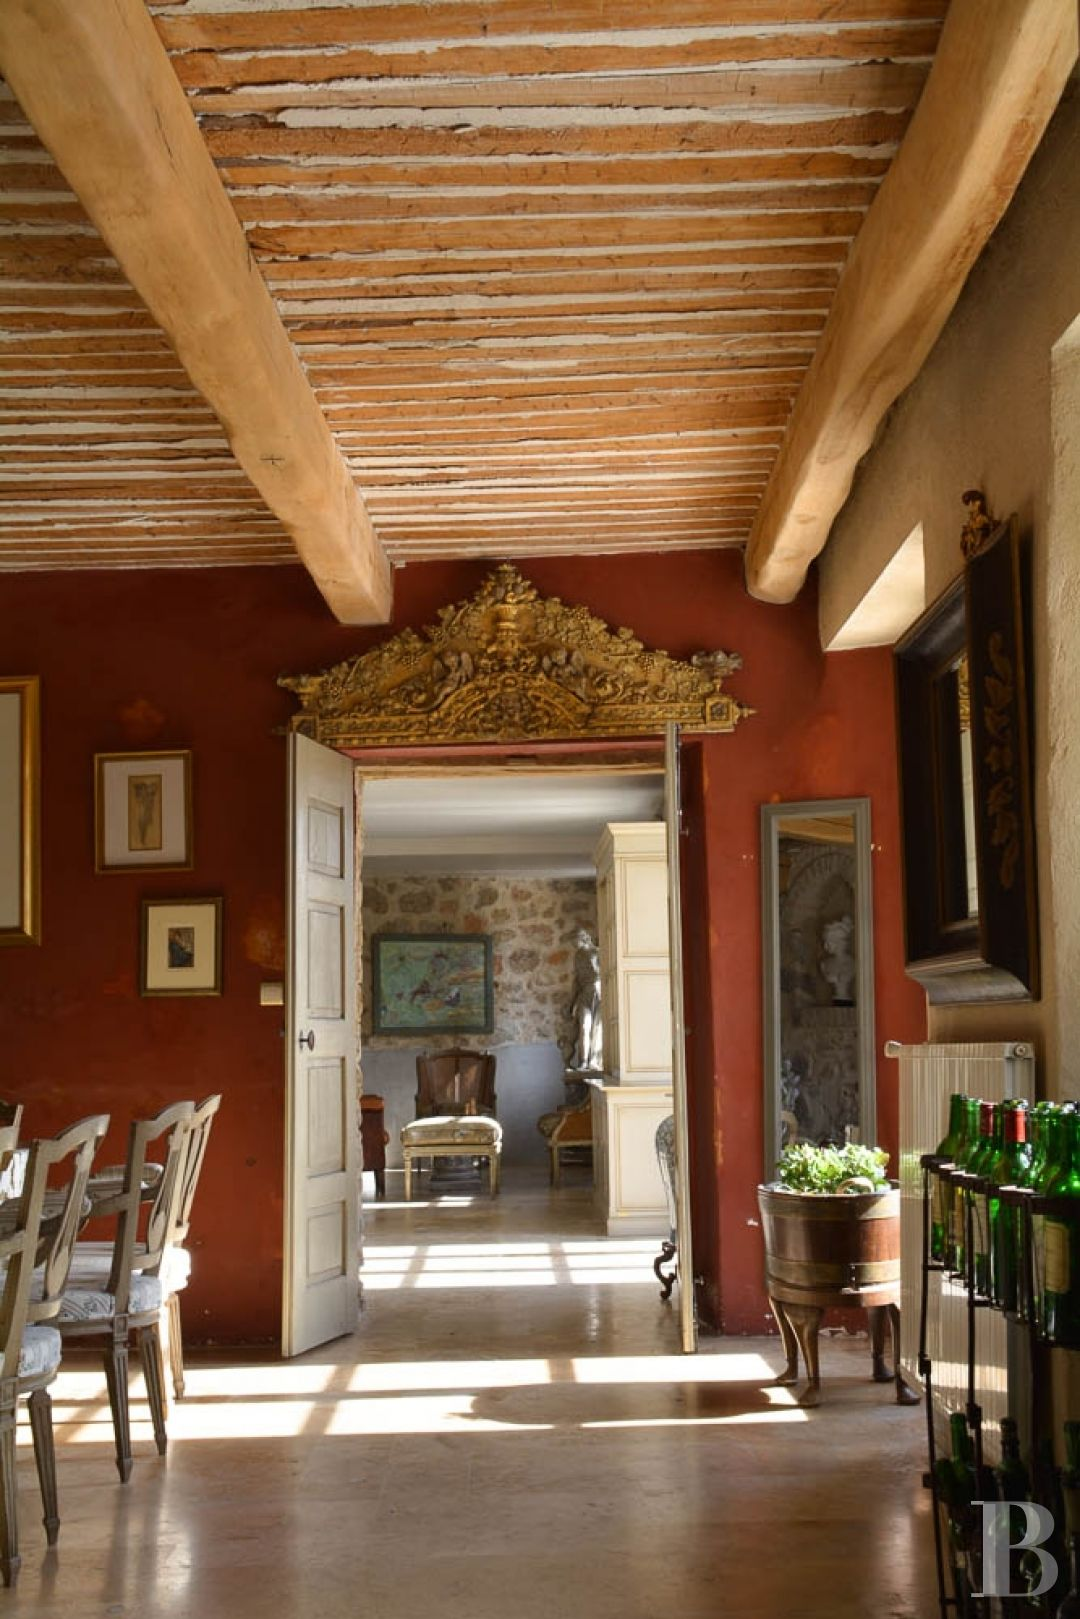 property for sale France provence cote dazur residences traditional - 5 zoom